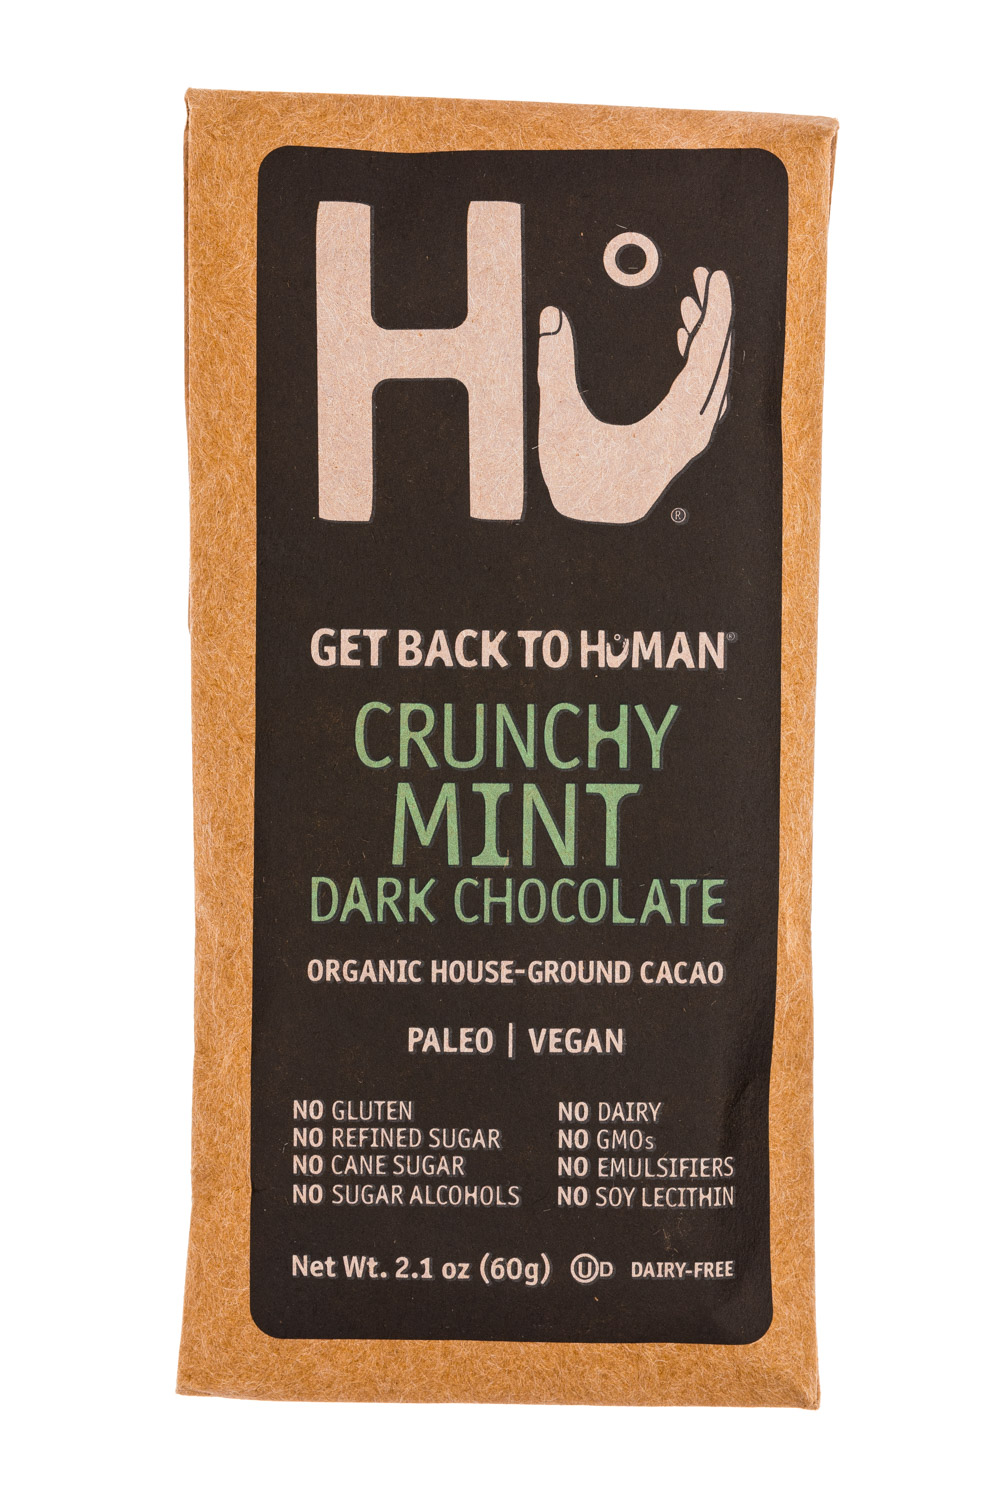 Crunchy Mint Dark Chocolate